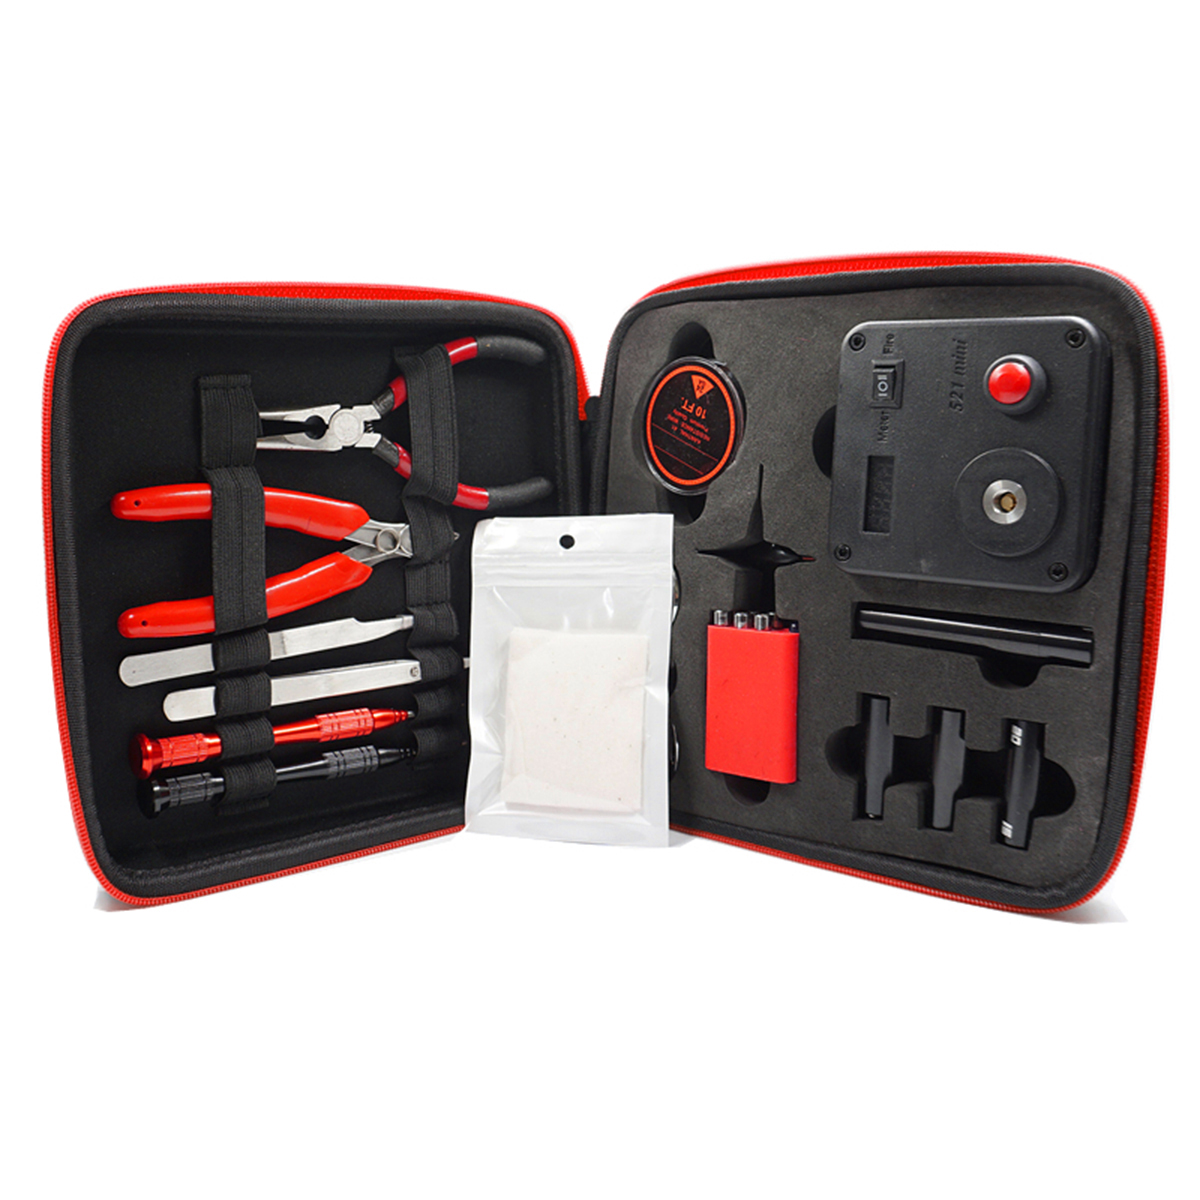 DSHA Update Coil Master V3 DIY Kit All in One CoilMaster V3+ Electronic Cigarette RDA Atomizer coil tool bag Accessories Vape